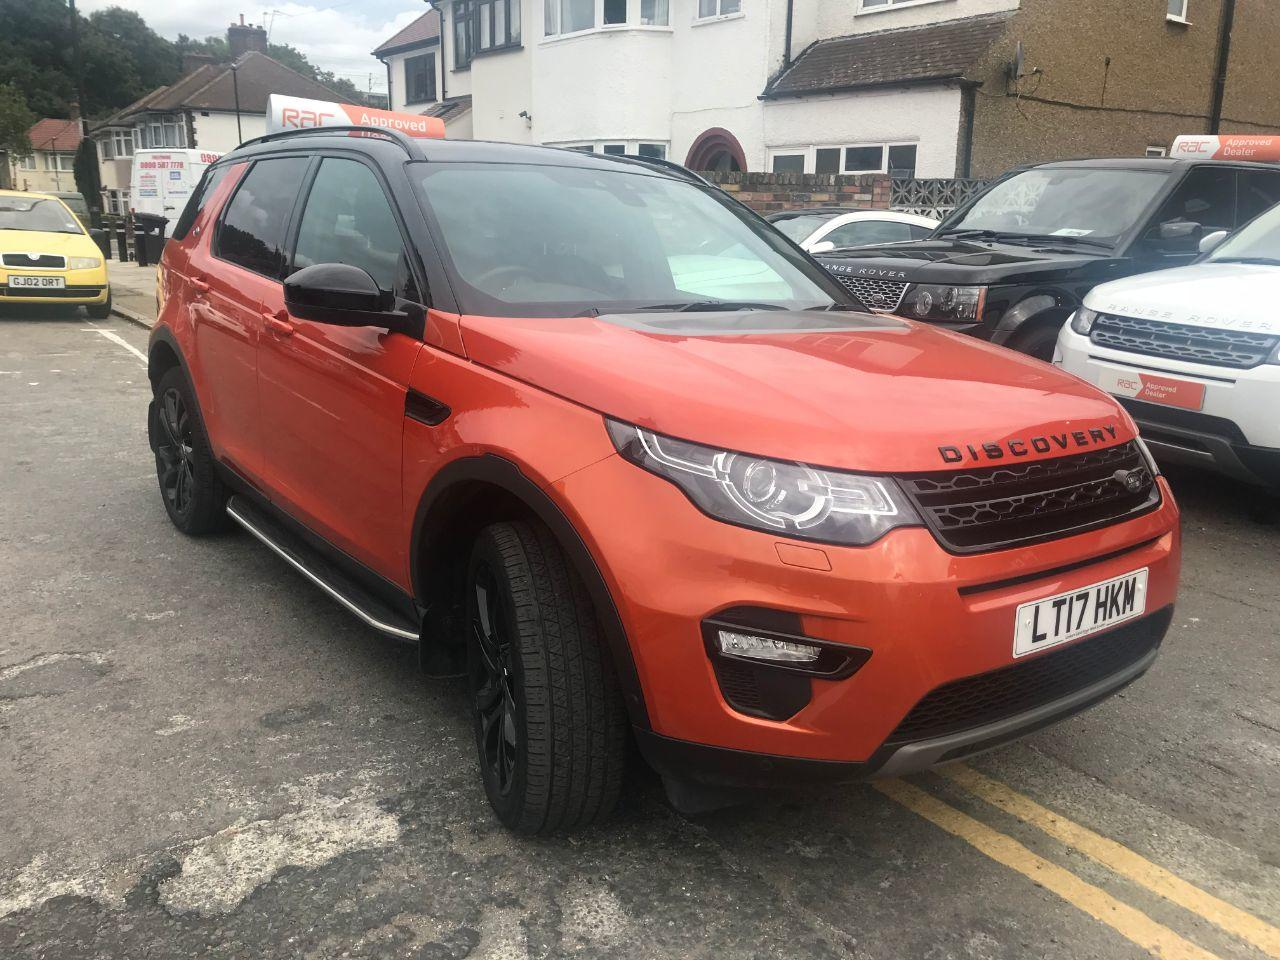 2017 Land Rover Discovery Sport 2.0 TD4 180 HSE Luxury 5dr Auto